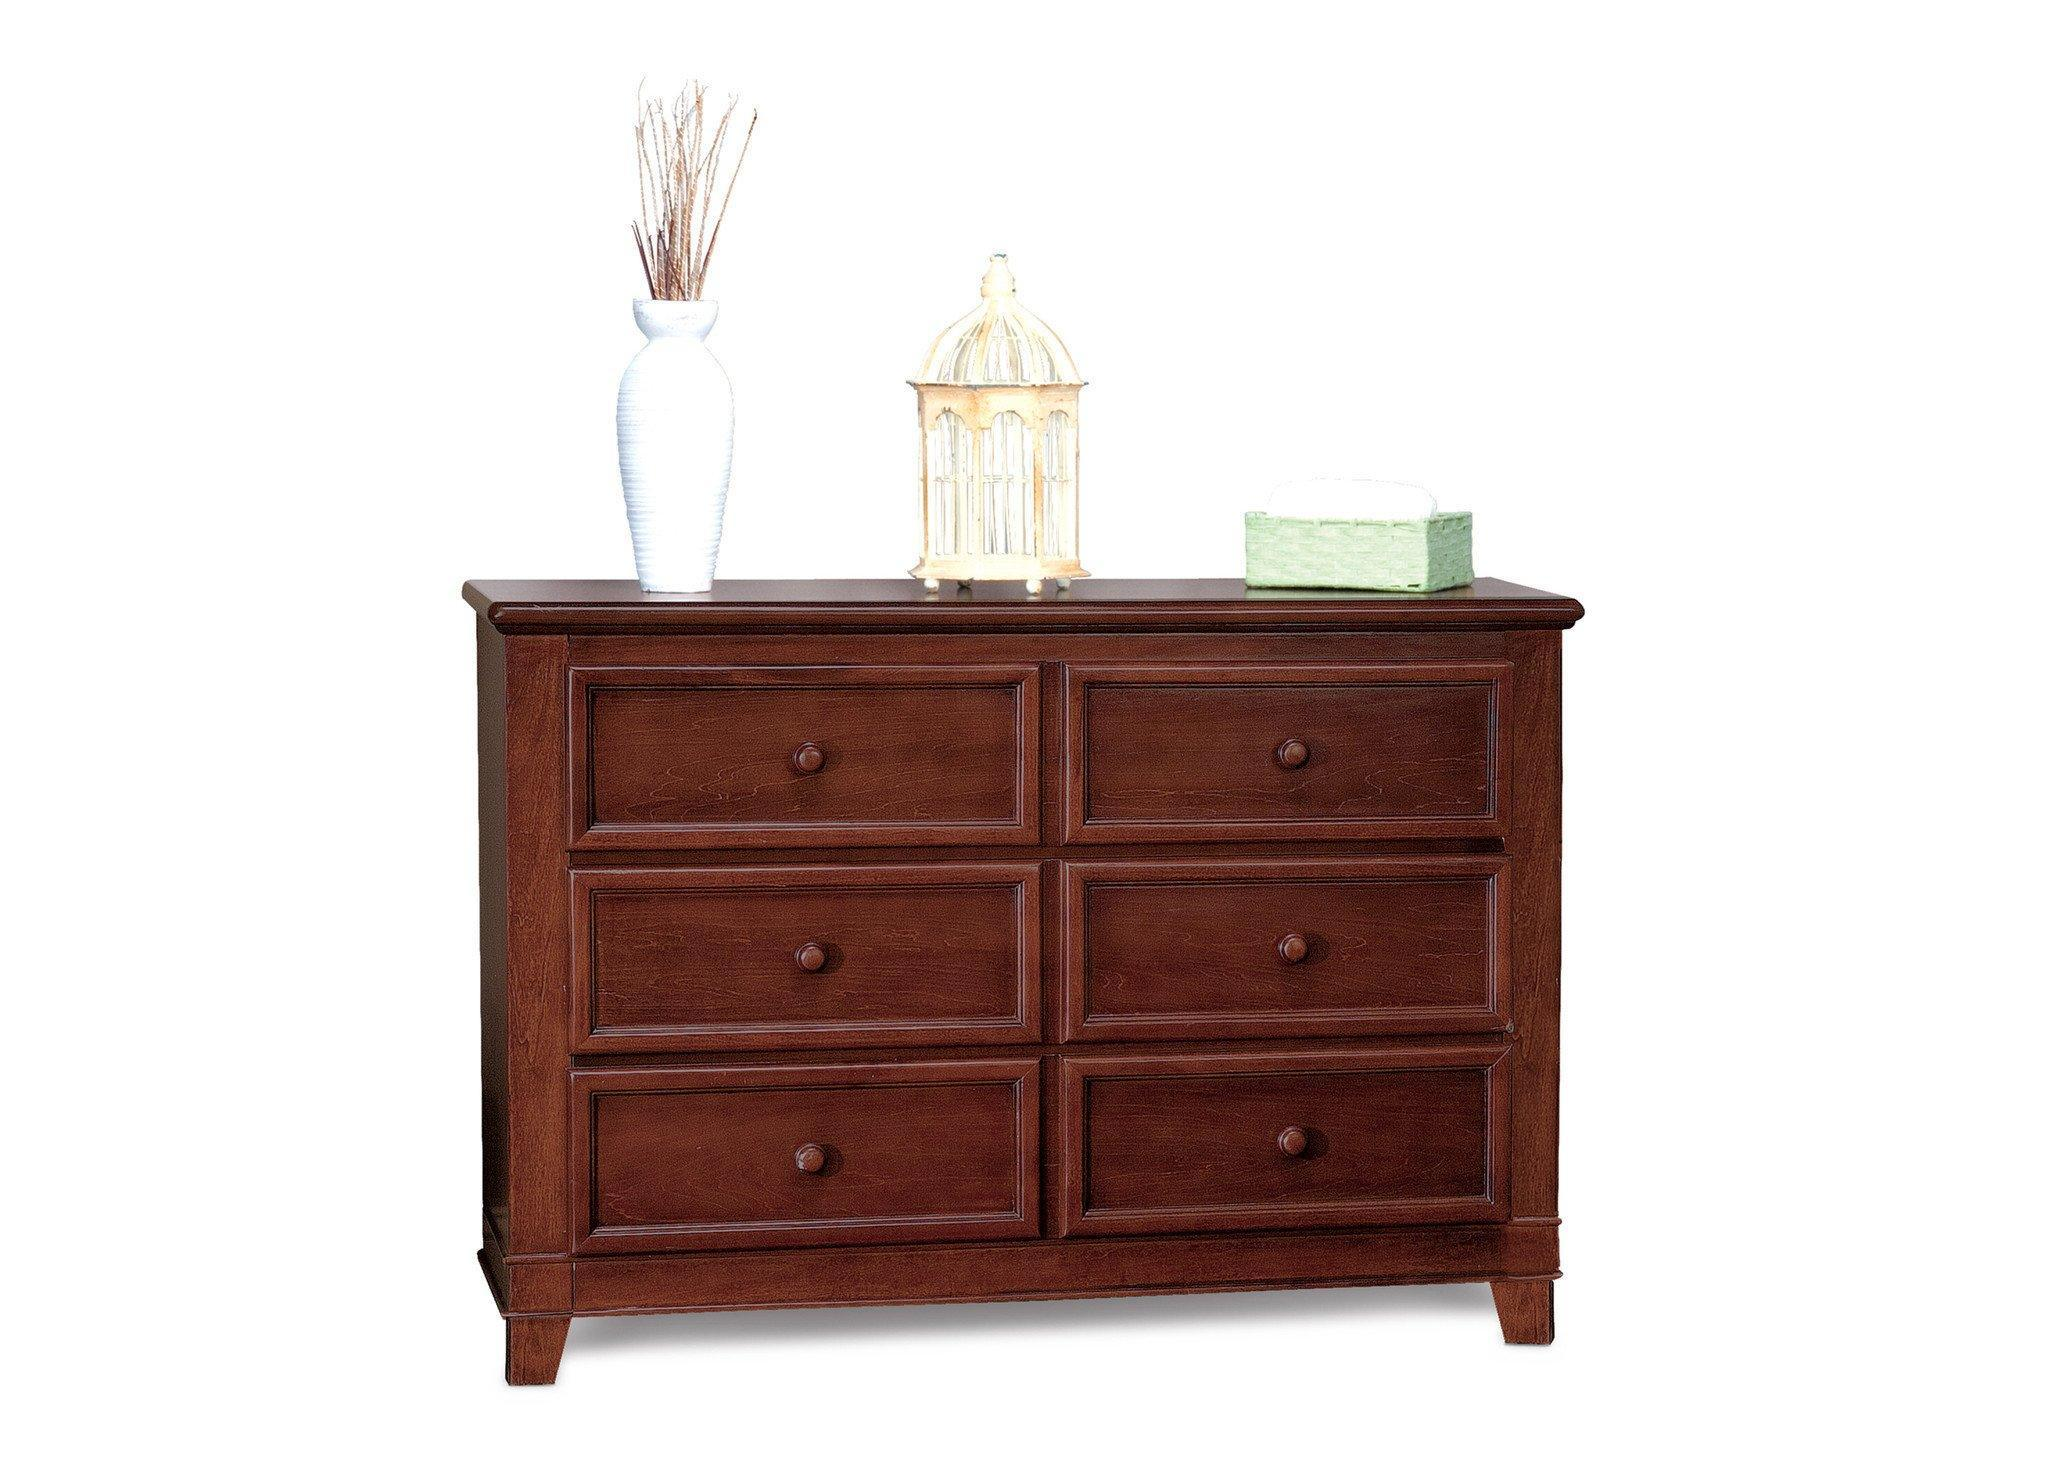 Delta Children Caramel (233) Westin 3 Drawer Dresser, Right View with Props a1a